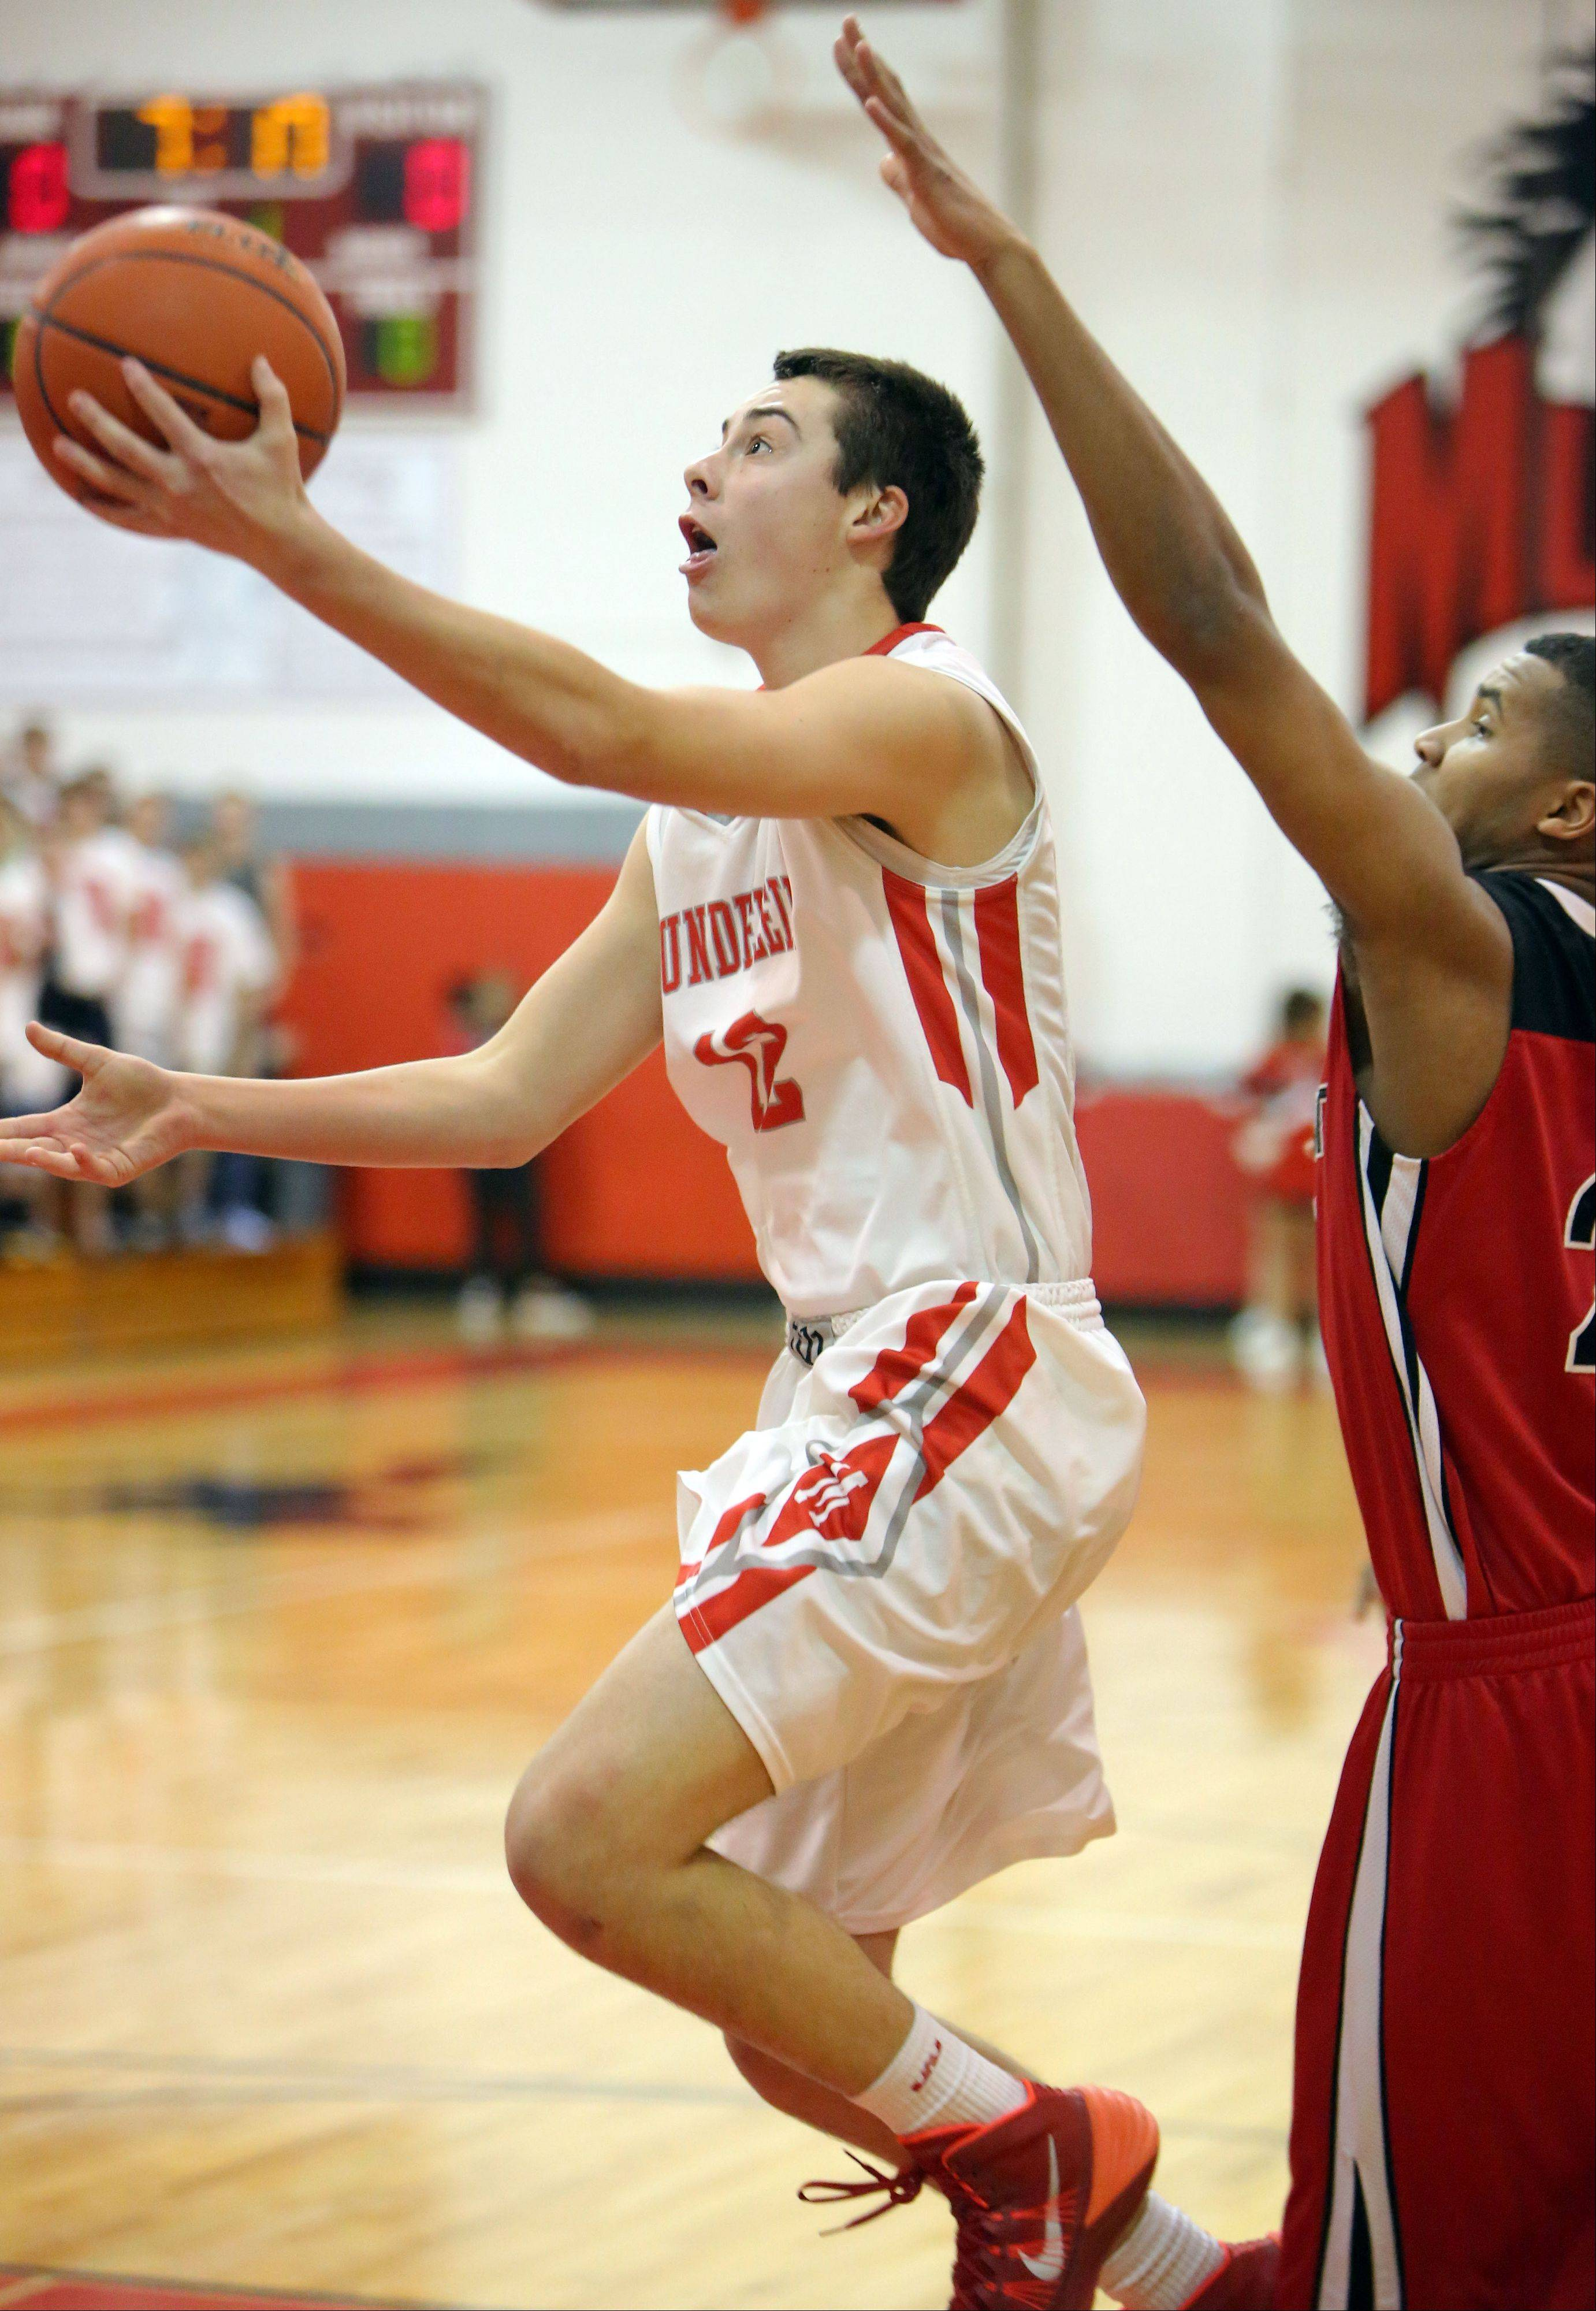 Mundelein's Derek Parola, left, drives to the hoop past Grant's Steve Dunning on Tuesday at Mundelein.